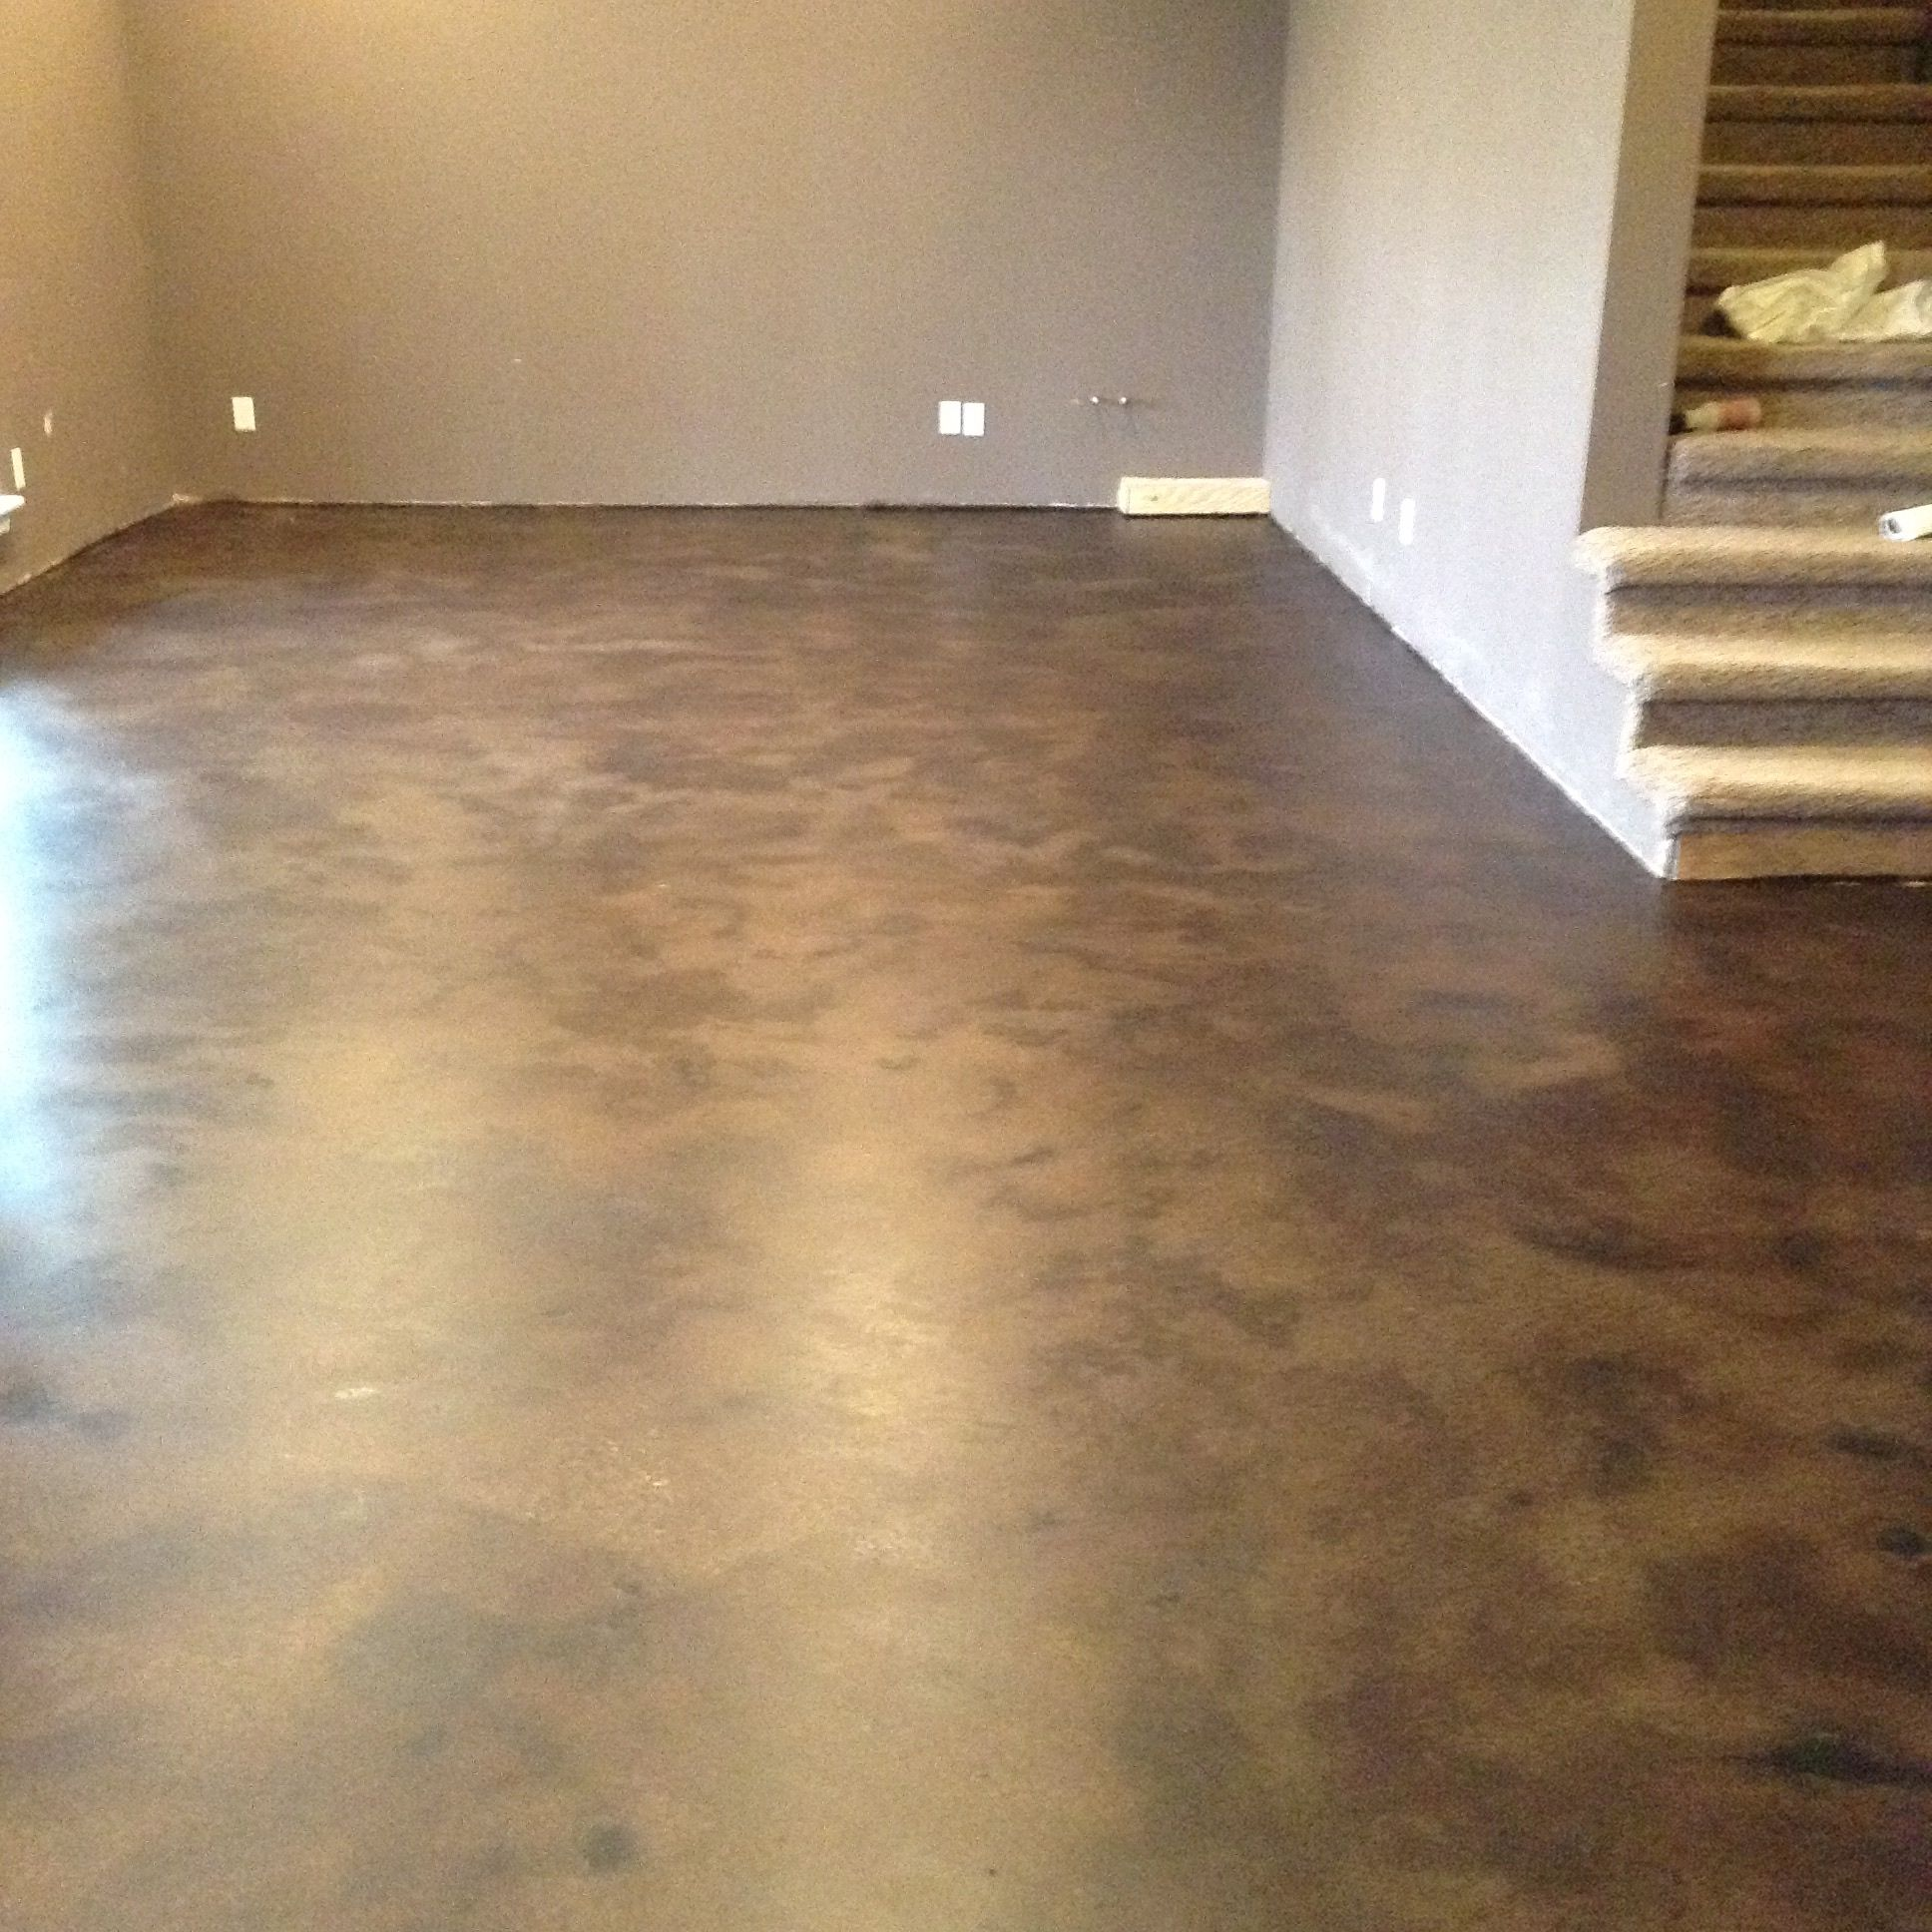 Basement Stained Concrete Floor: Used As An Entertainment